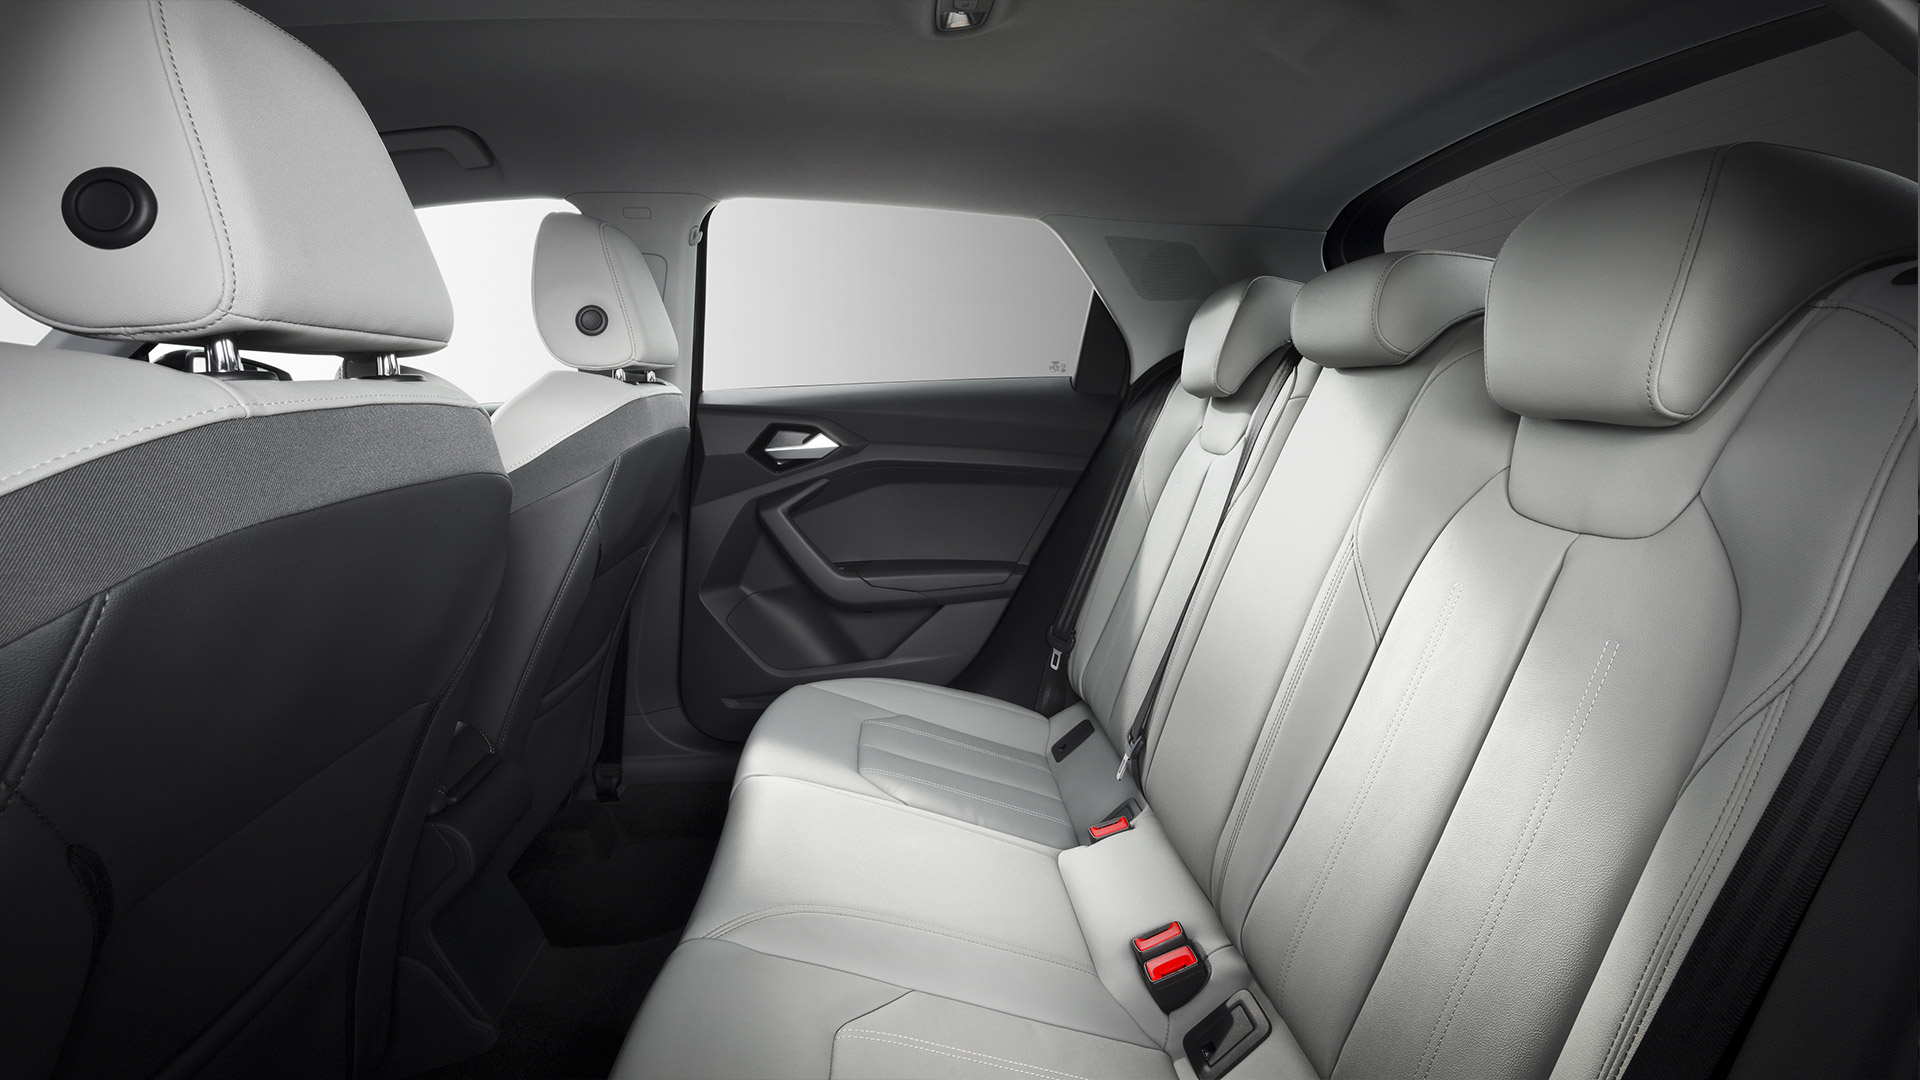 Audi A1 Rear Seating